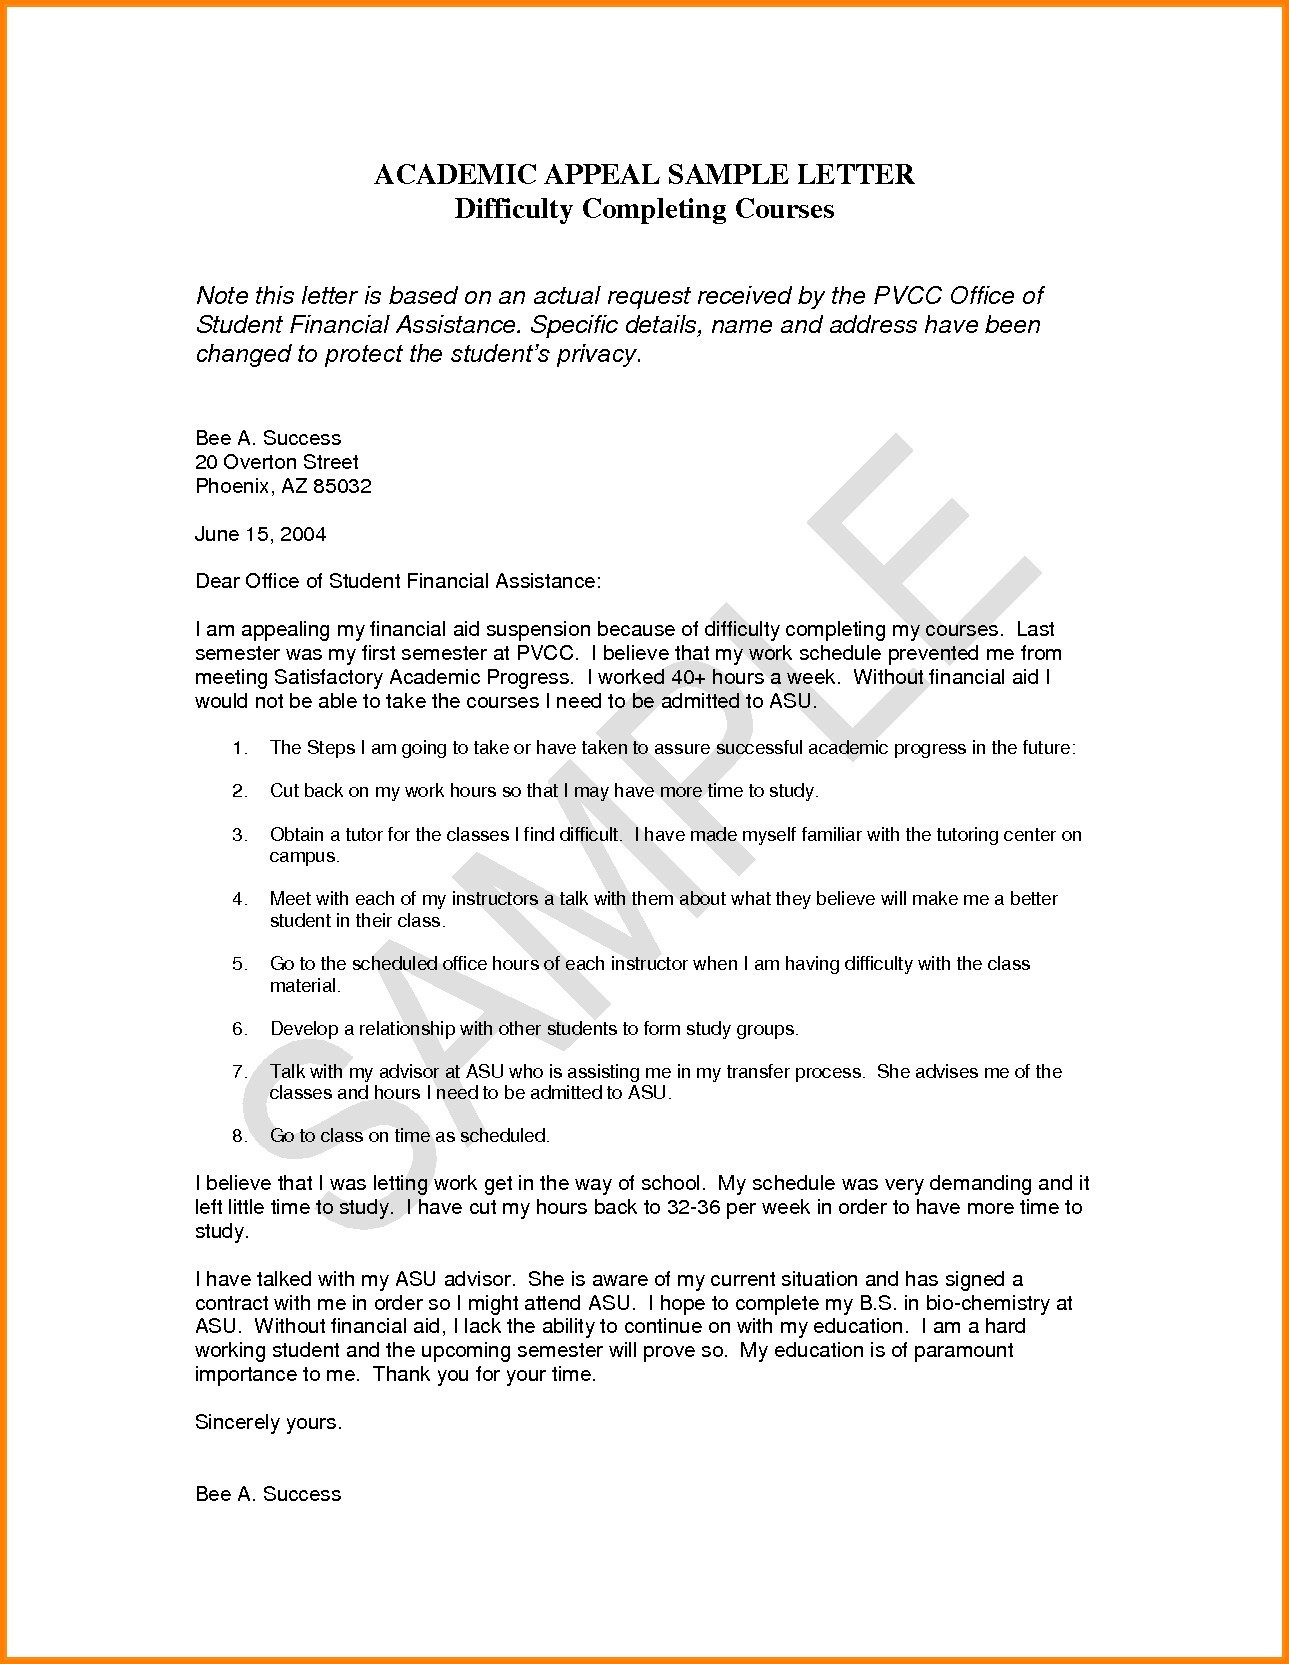 dismissal letter template example-Academic Probation Letter Template Fresh Dismissal Appeal Letter format Refrence Academic Appeal Letter 17-s